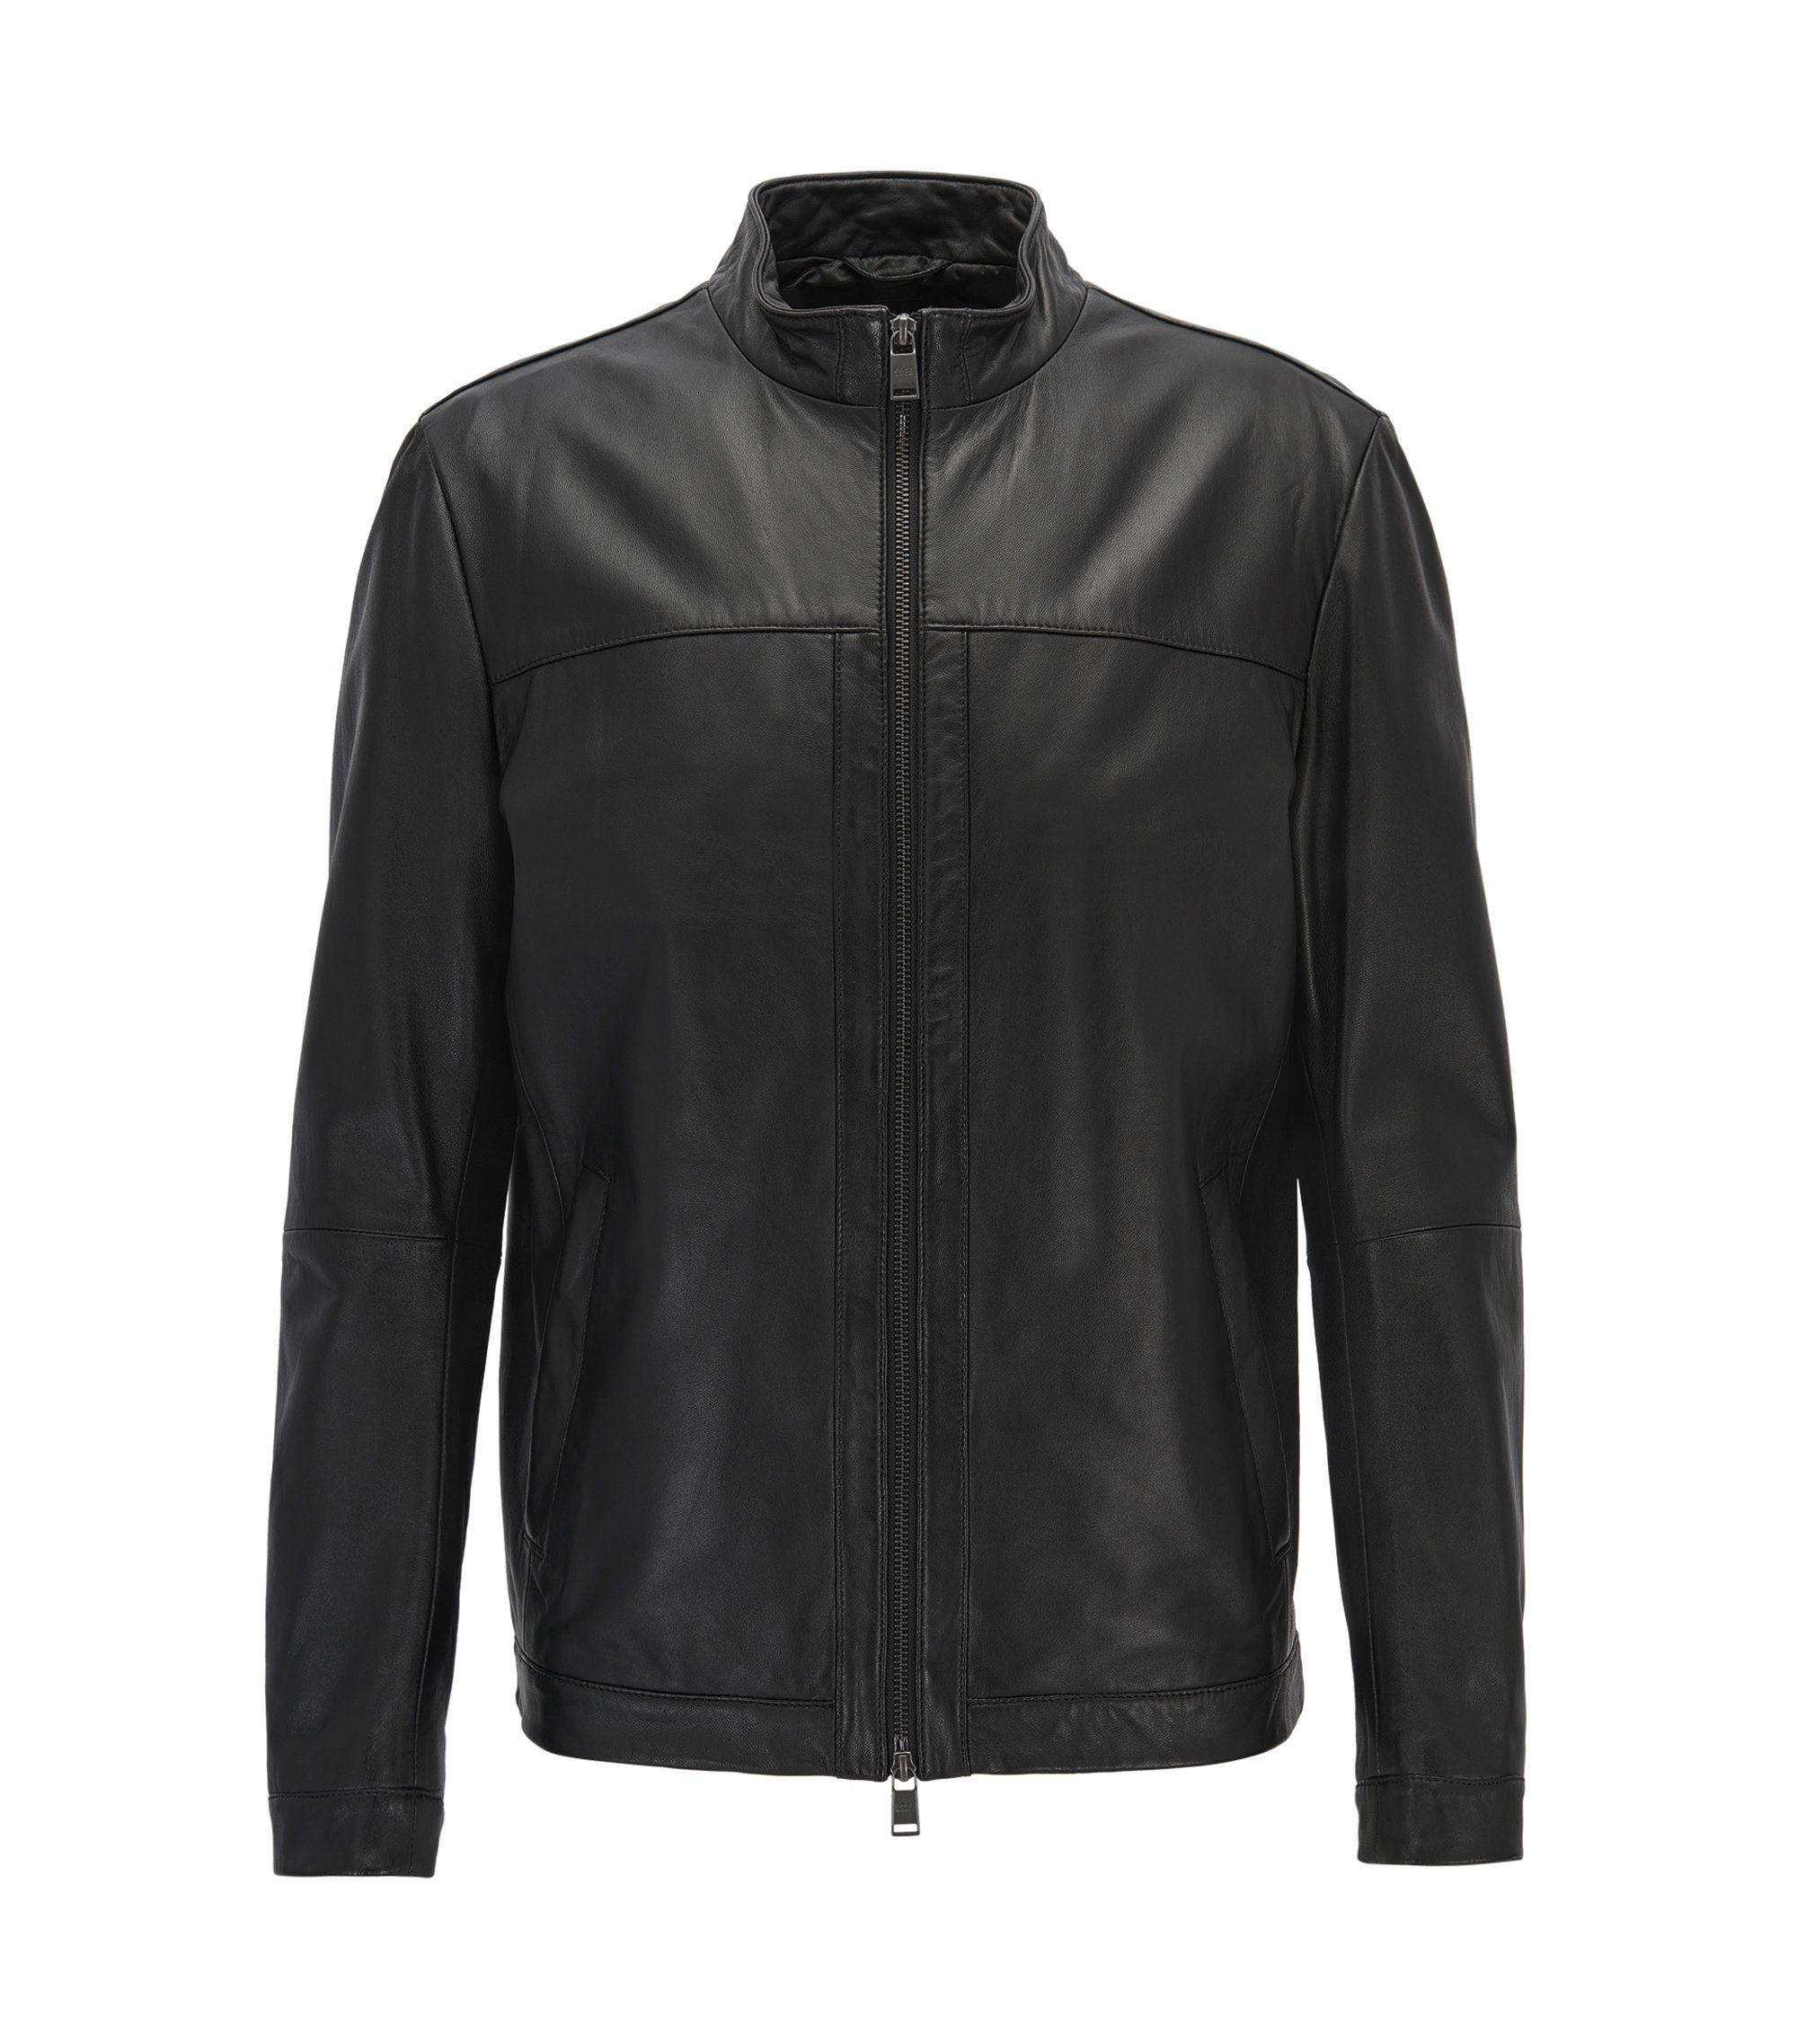 Regular-Fit Lederjacke: 'Arweo', Schwarz